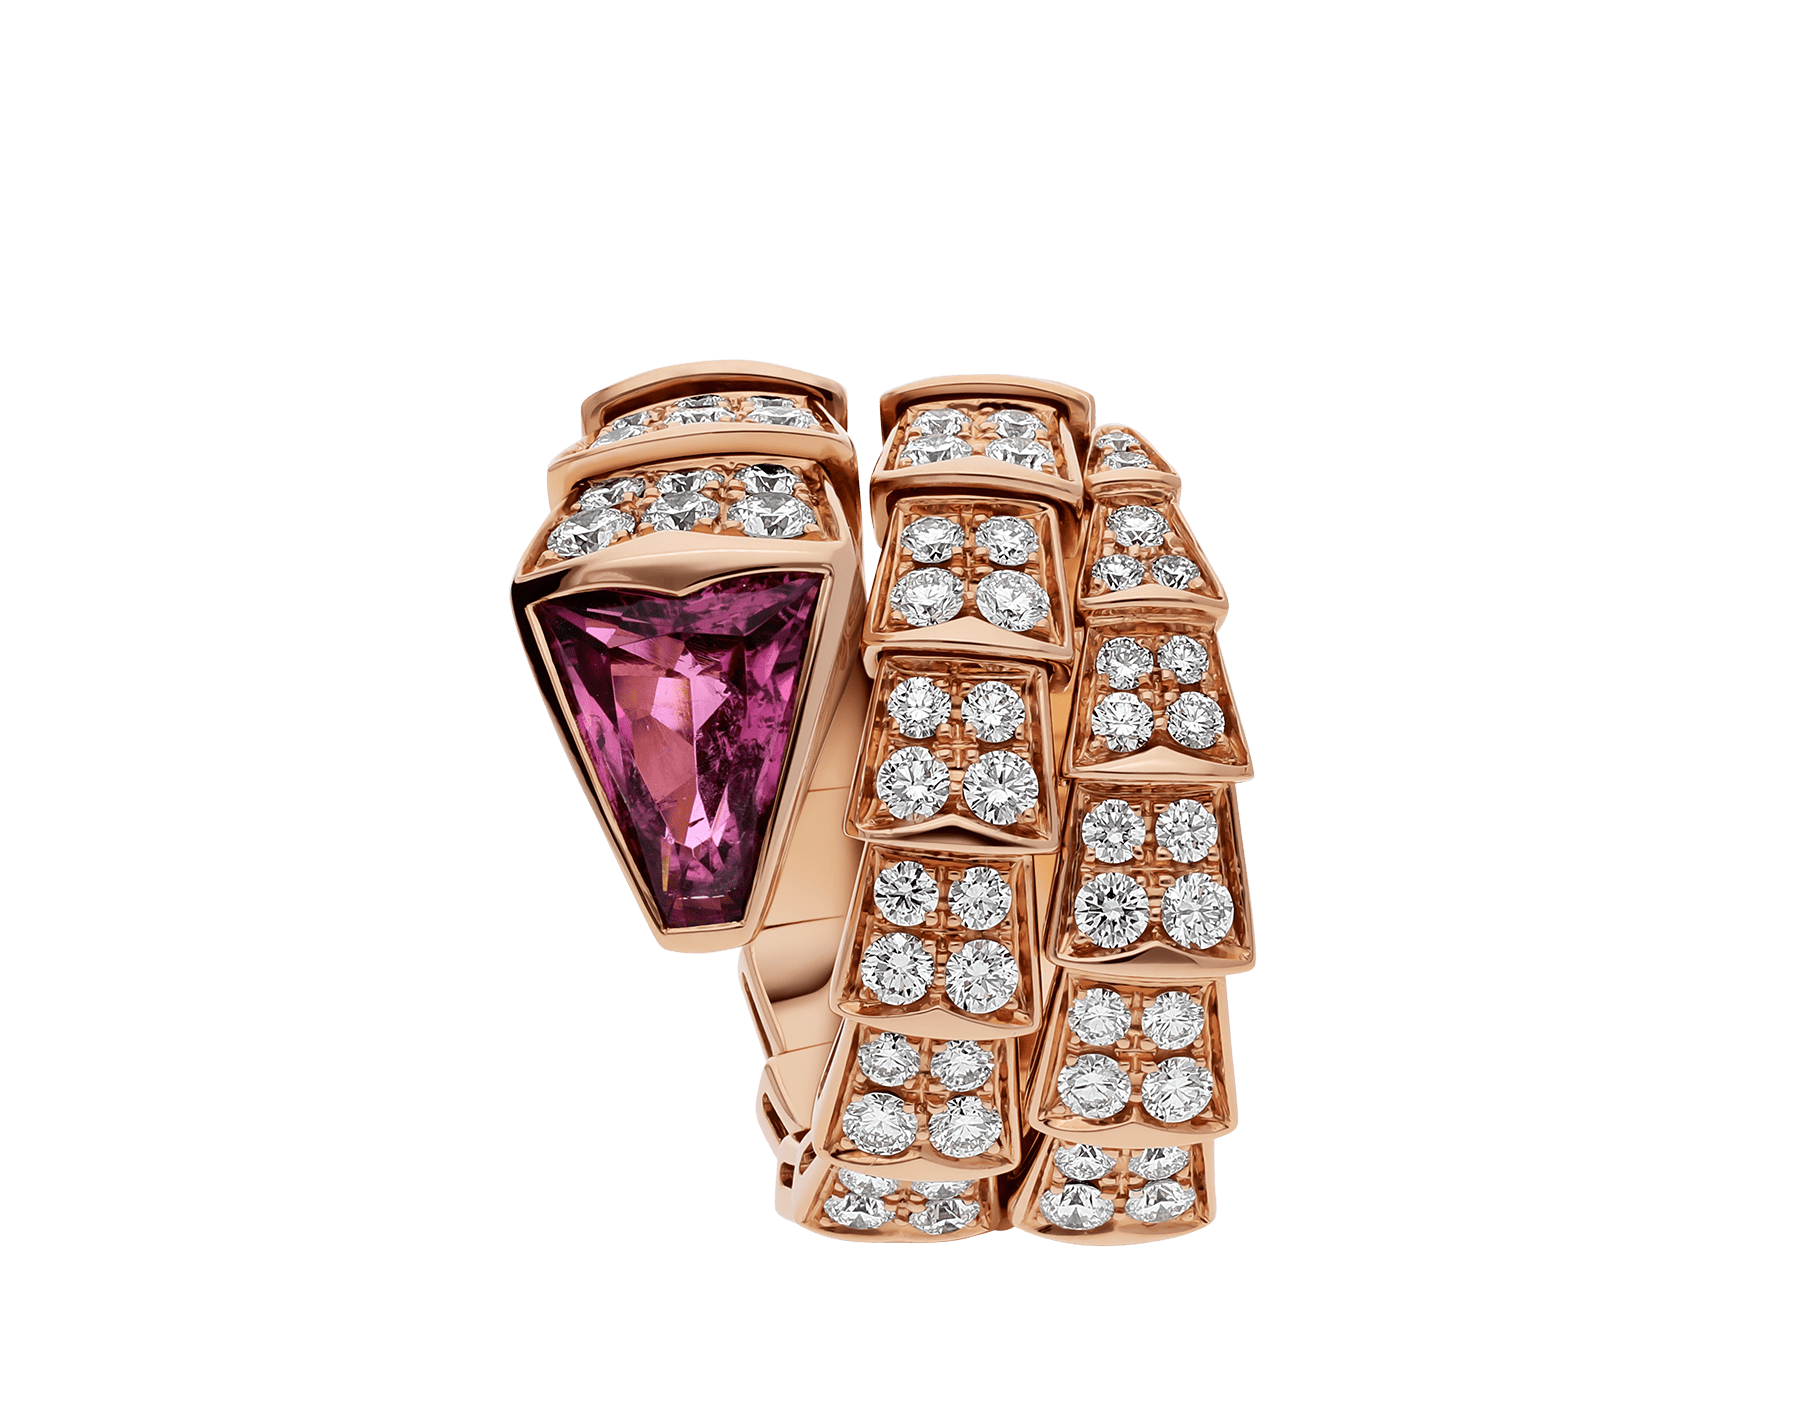 Serpenti two-coil ring in 18 kt rose gold, set with full pavé diamonds and a rubellite on the head. AN856156 image 2